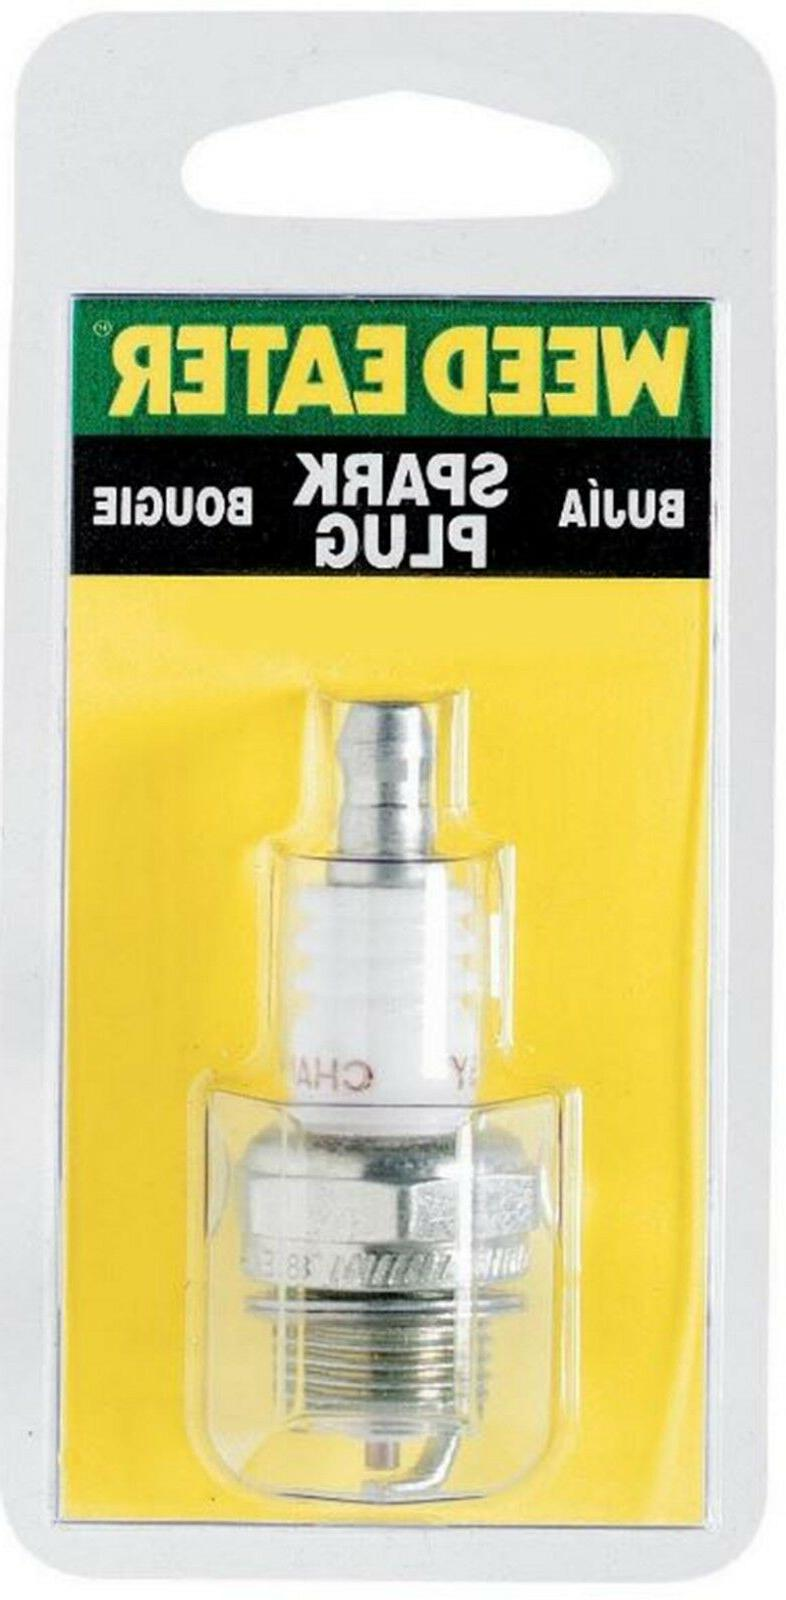 Weed Eater 952030249 Sparkplug for Poulan Pro Gas String Tri